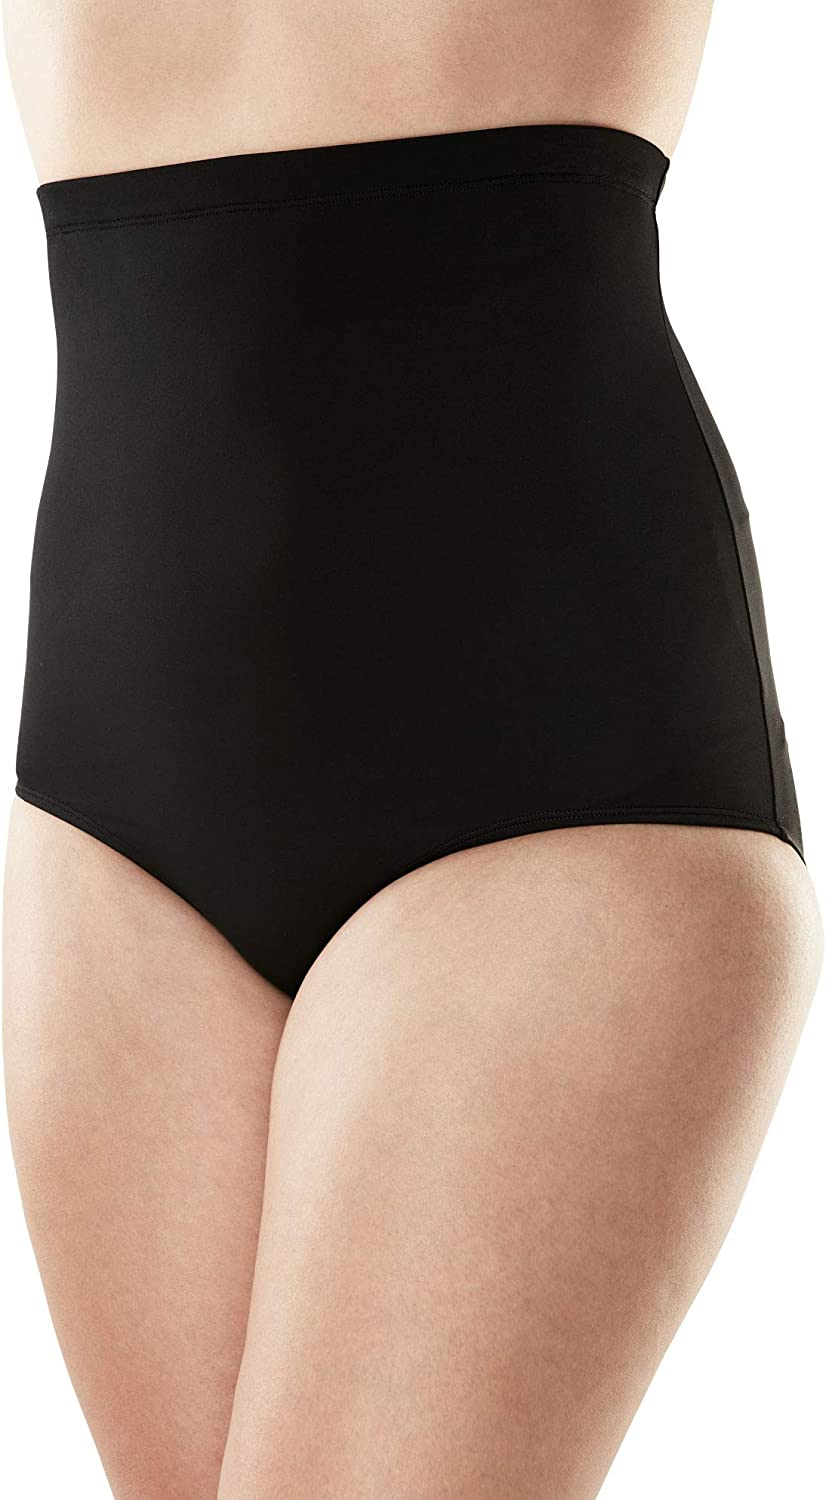 Swimsuits For All Women's Plus Size High-Waist Swim Brief with Tummy Control Swimsuit Bottoms